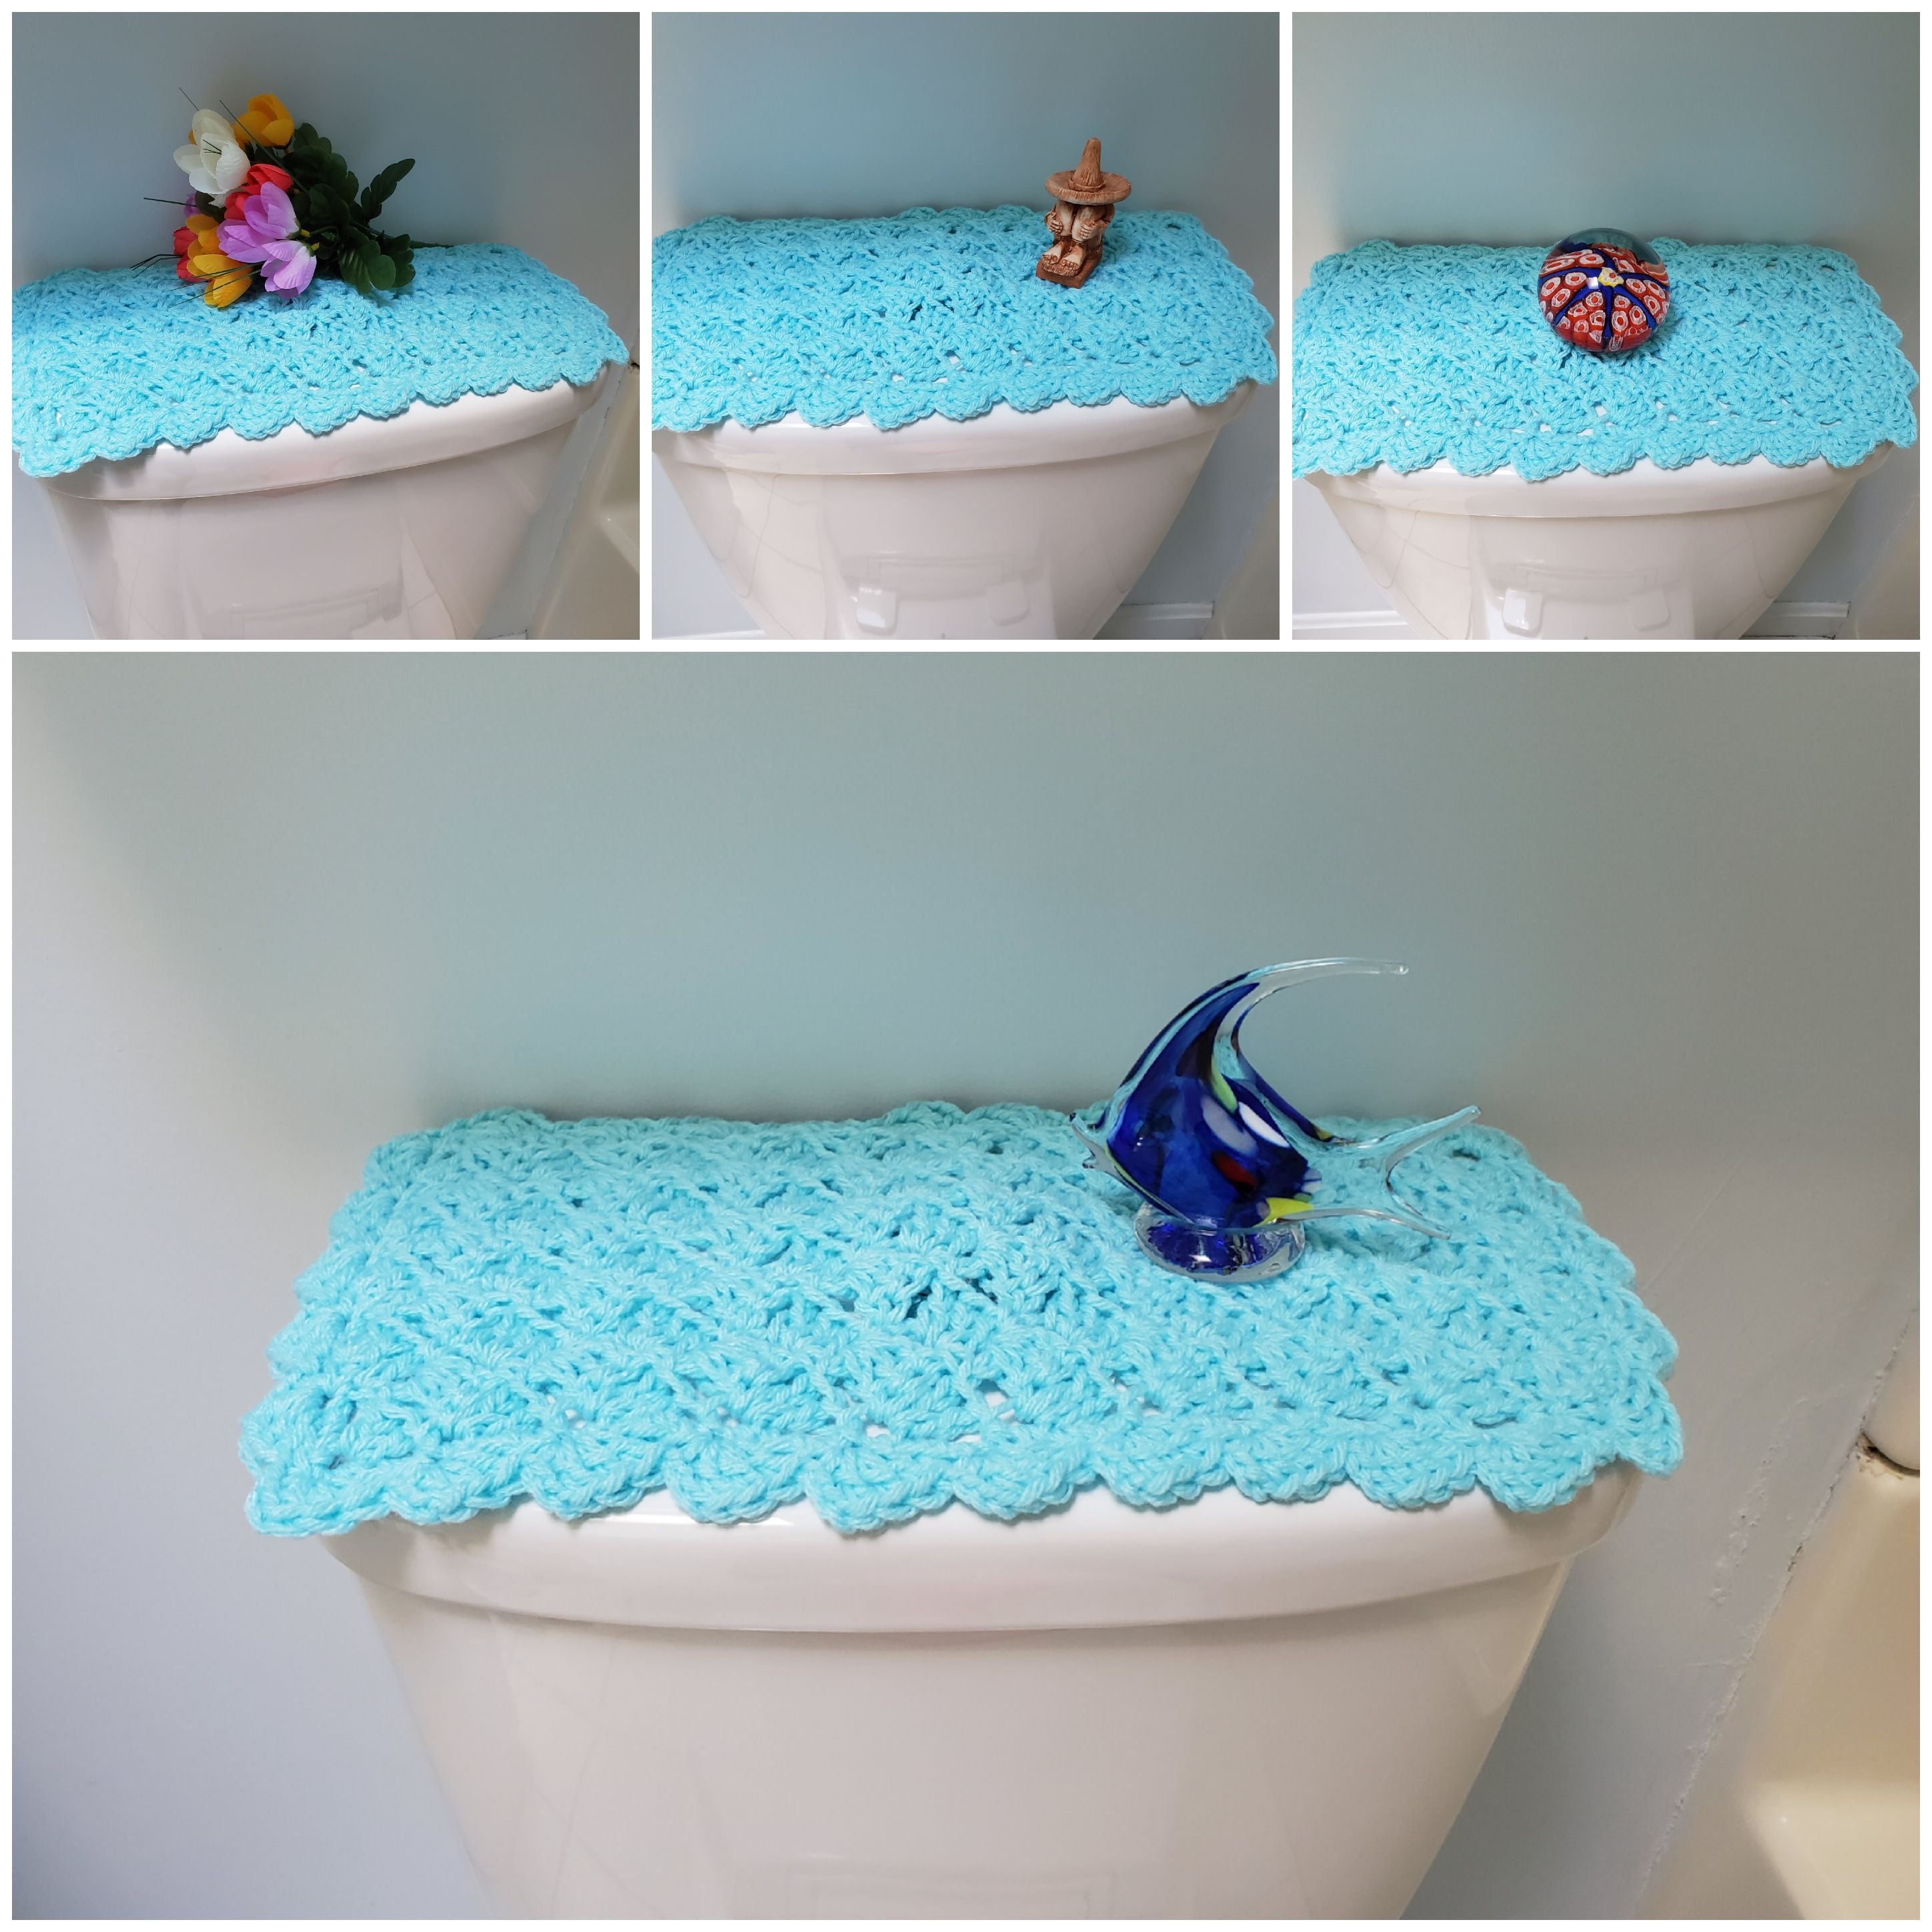 Toilet Tank Topper Crochet Toilet Tank Topper Bathroom Decor Cool Blue Ttt1o Crafts To Make And Sell Diy Craft Projects Toilet Tank